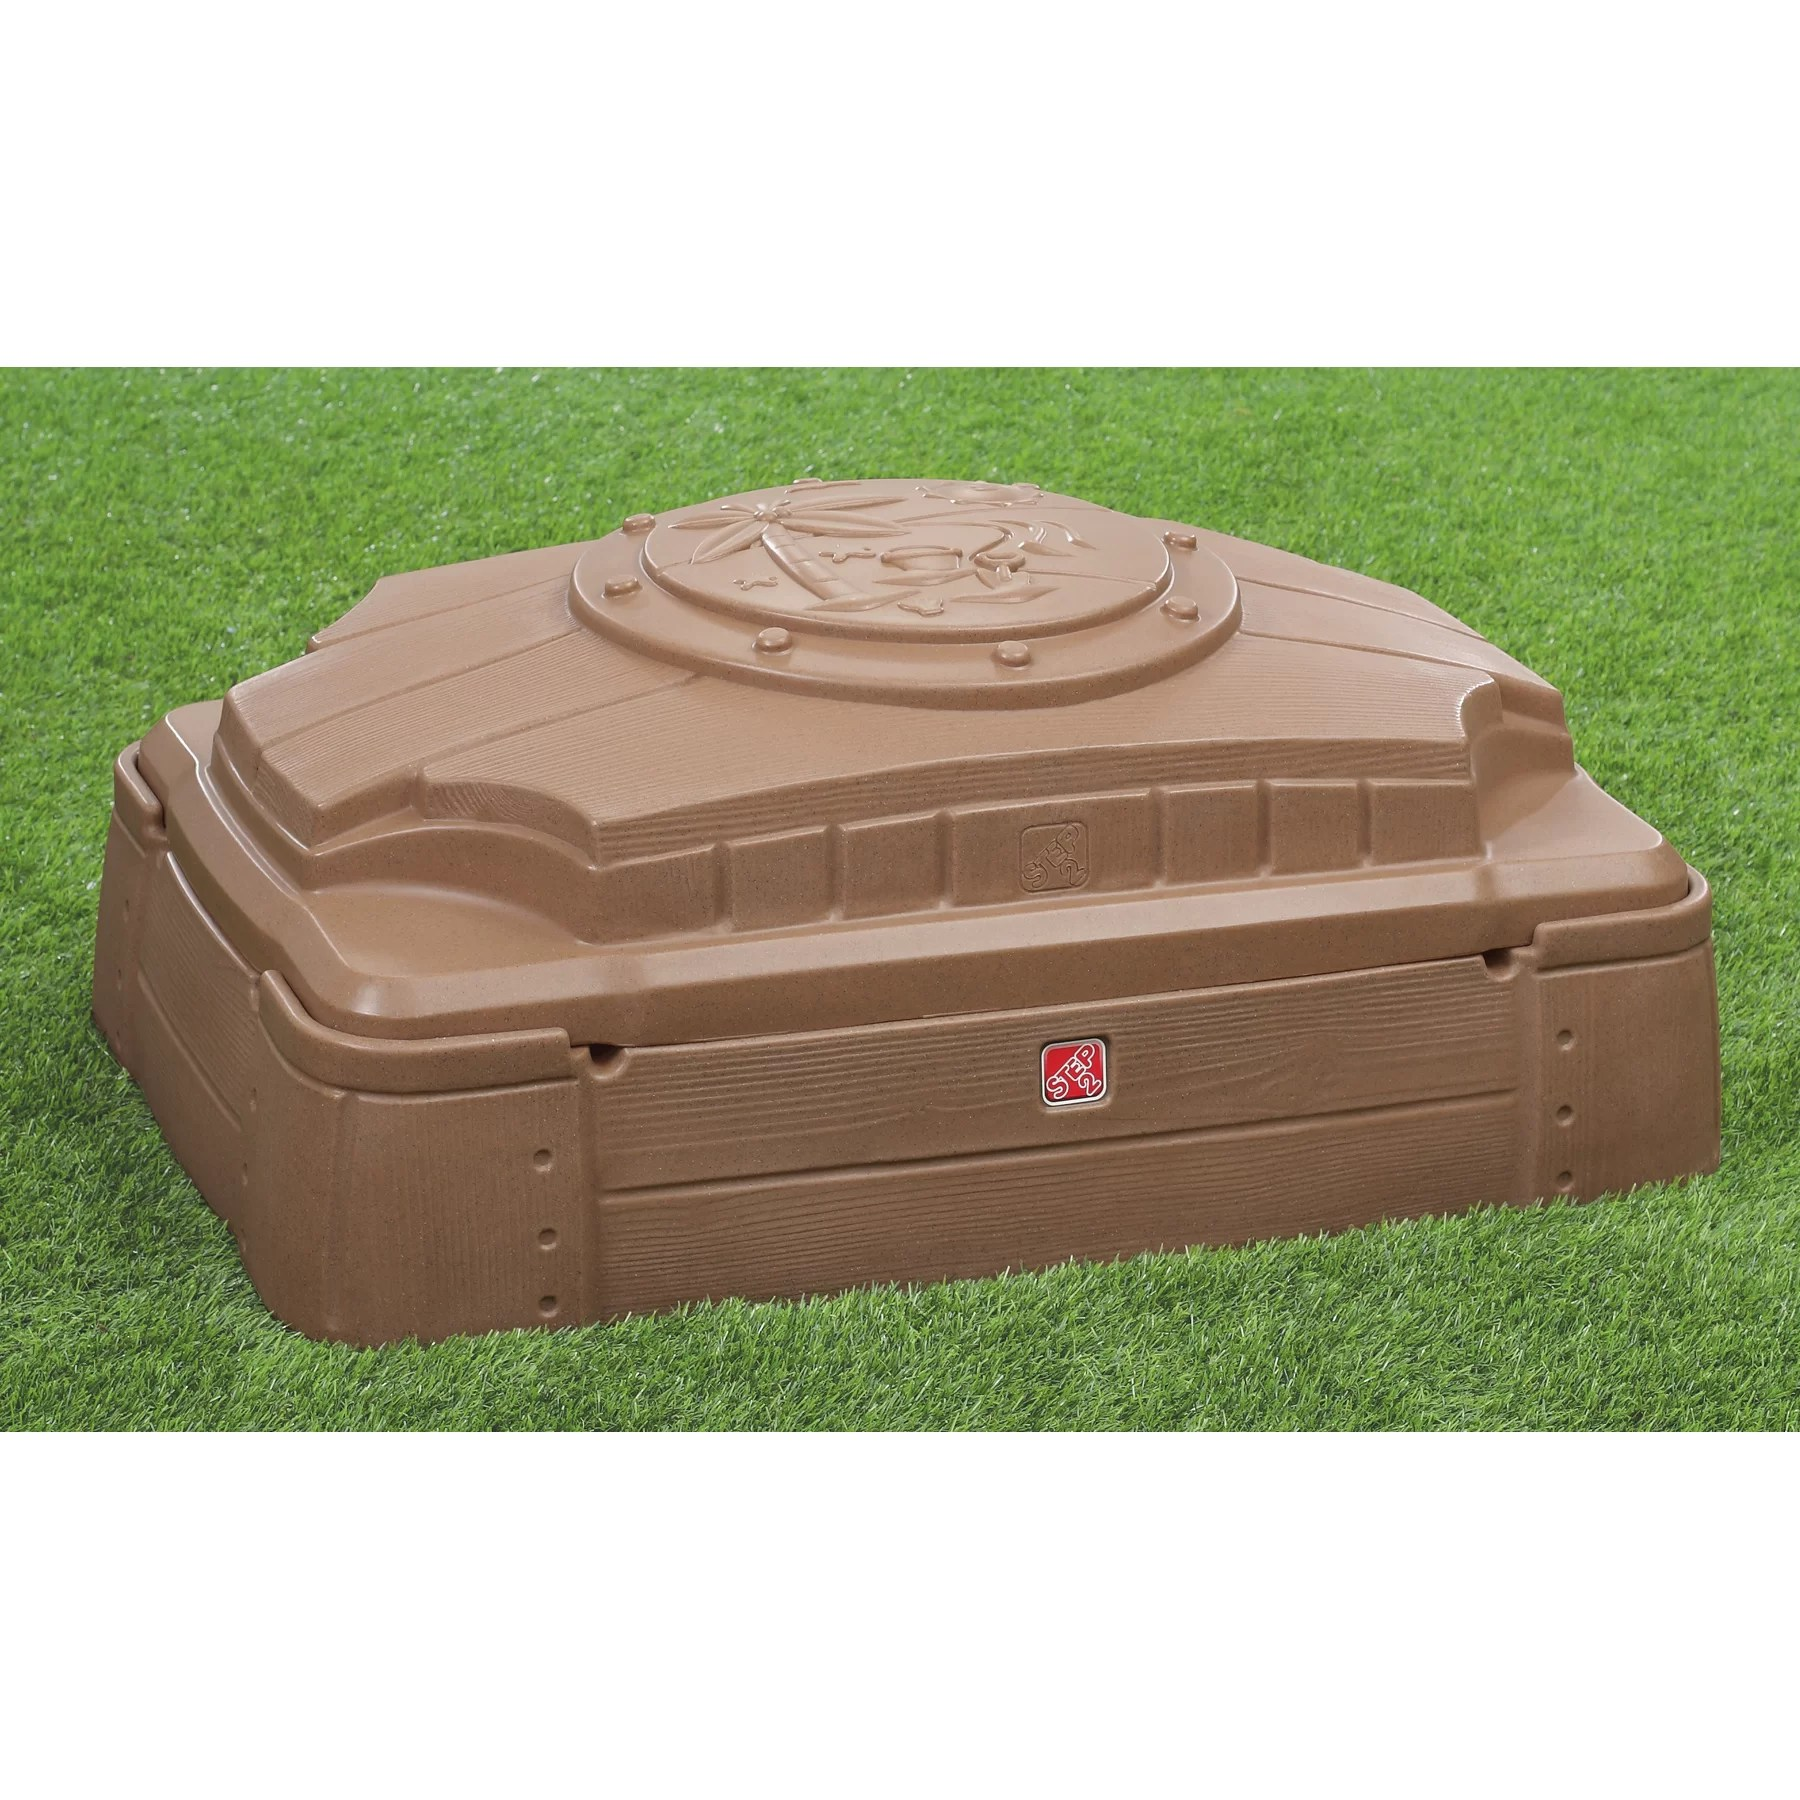 Step2 Play And Store 239 Rectangular Sandbox With Cover